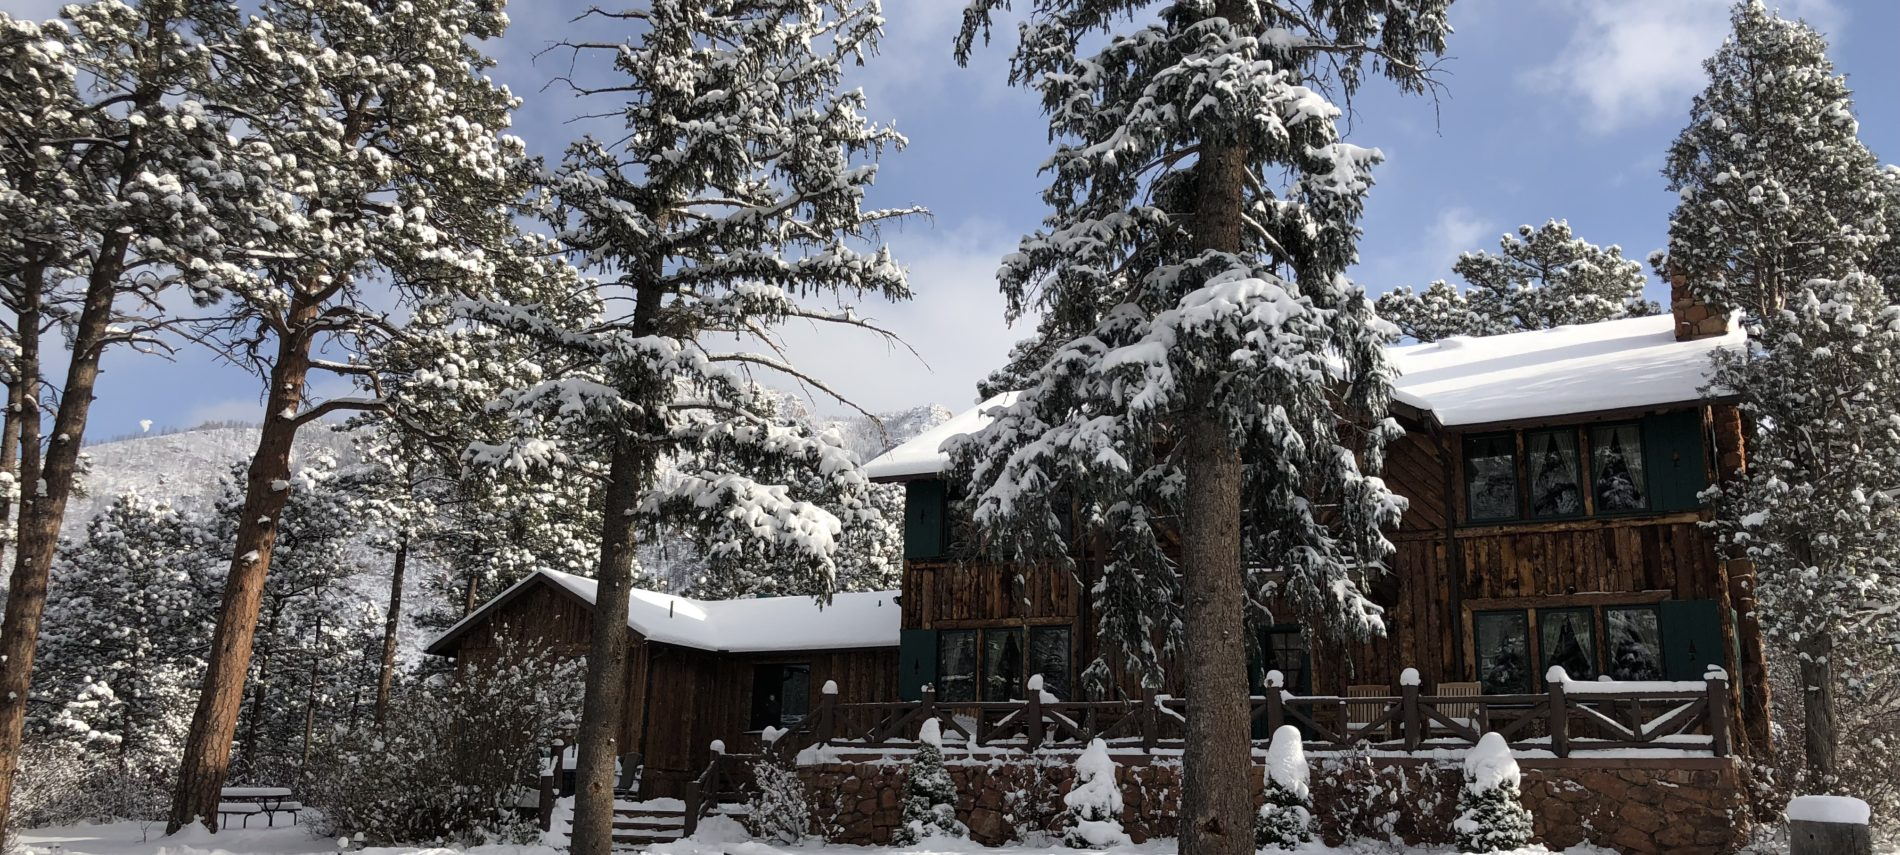 log lodge style home with pine trees and snow and blue and cloudy skies